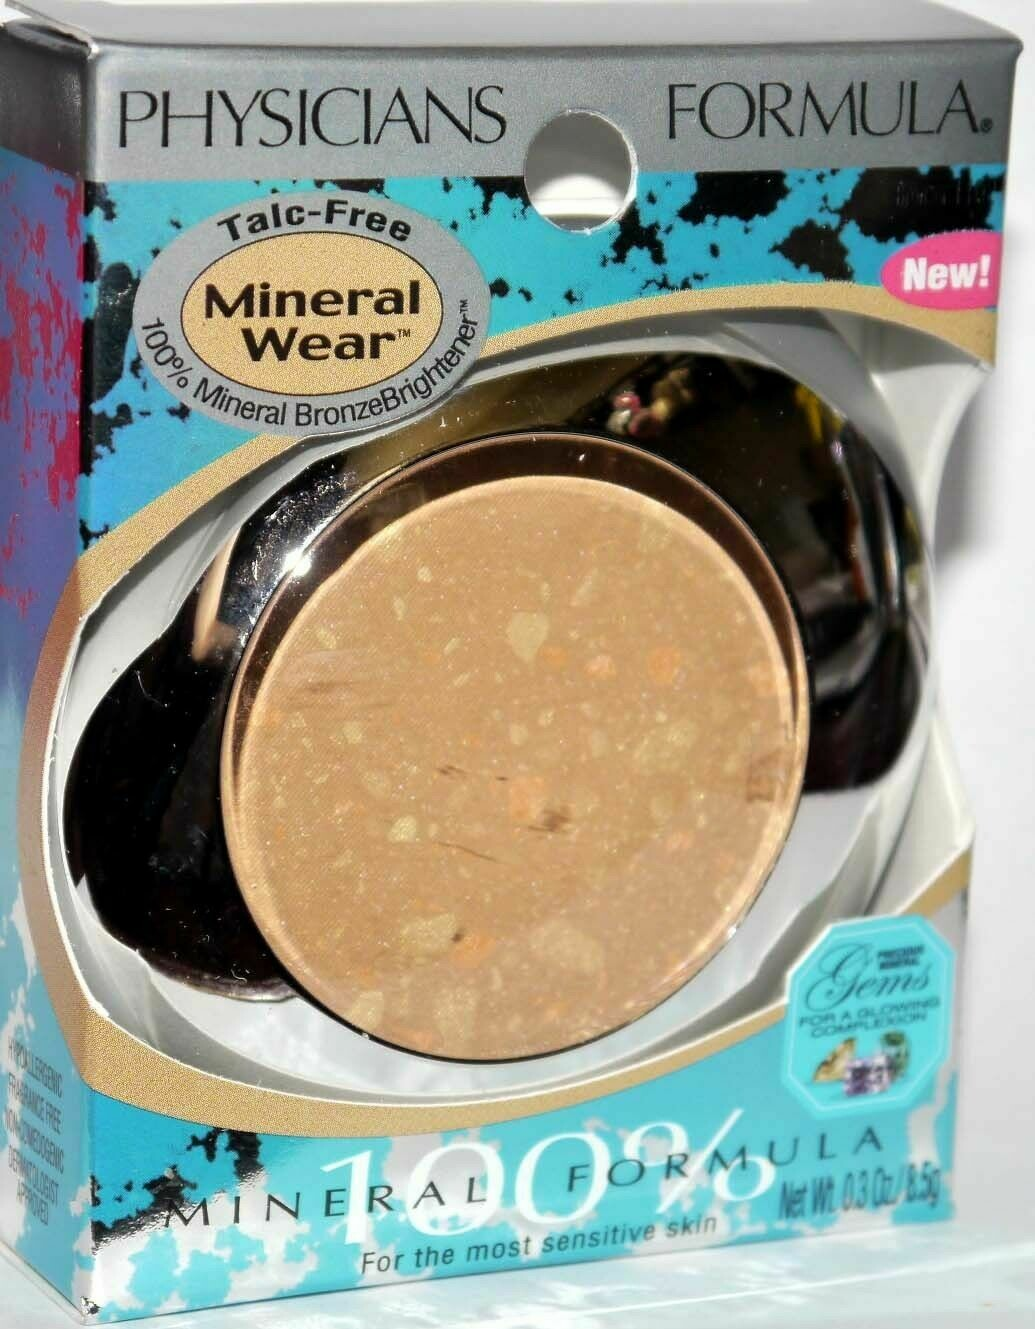 Physicians Formula Bronze Brightener Talc-Free Mineral Wear #1102 BRONZER .3 oz